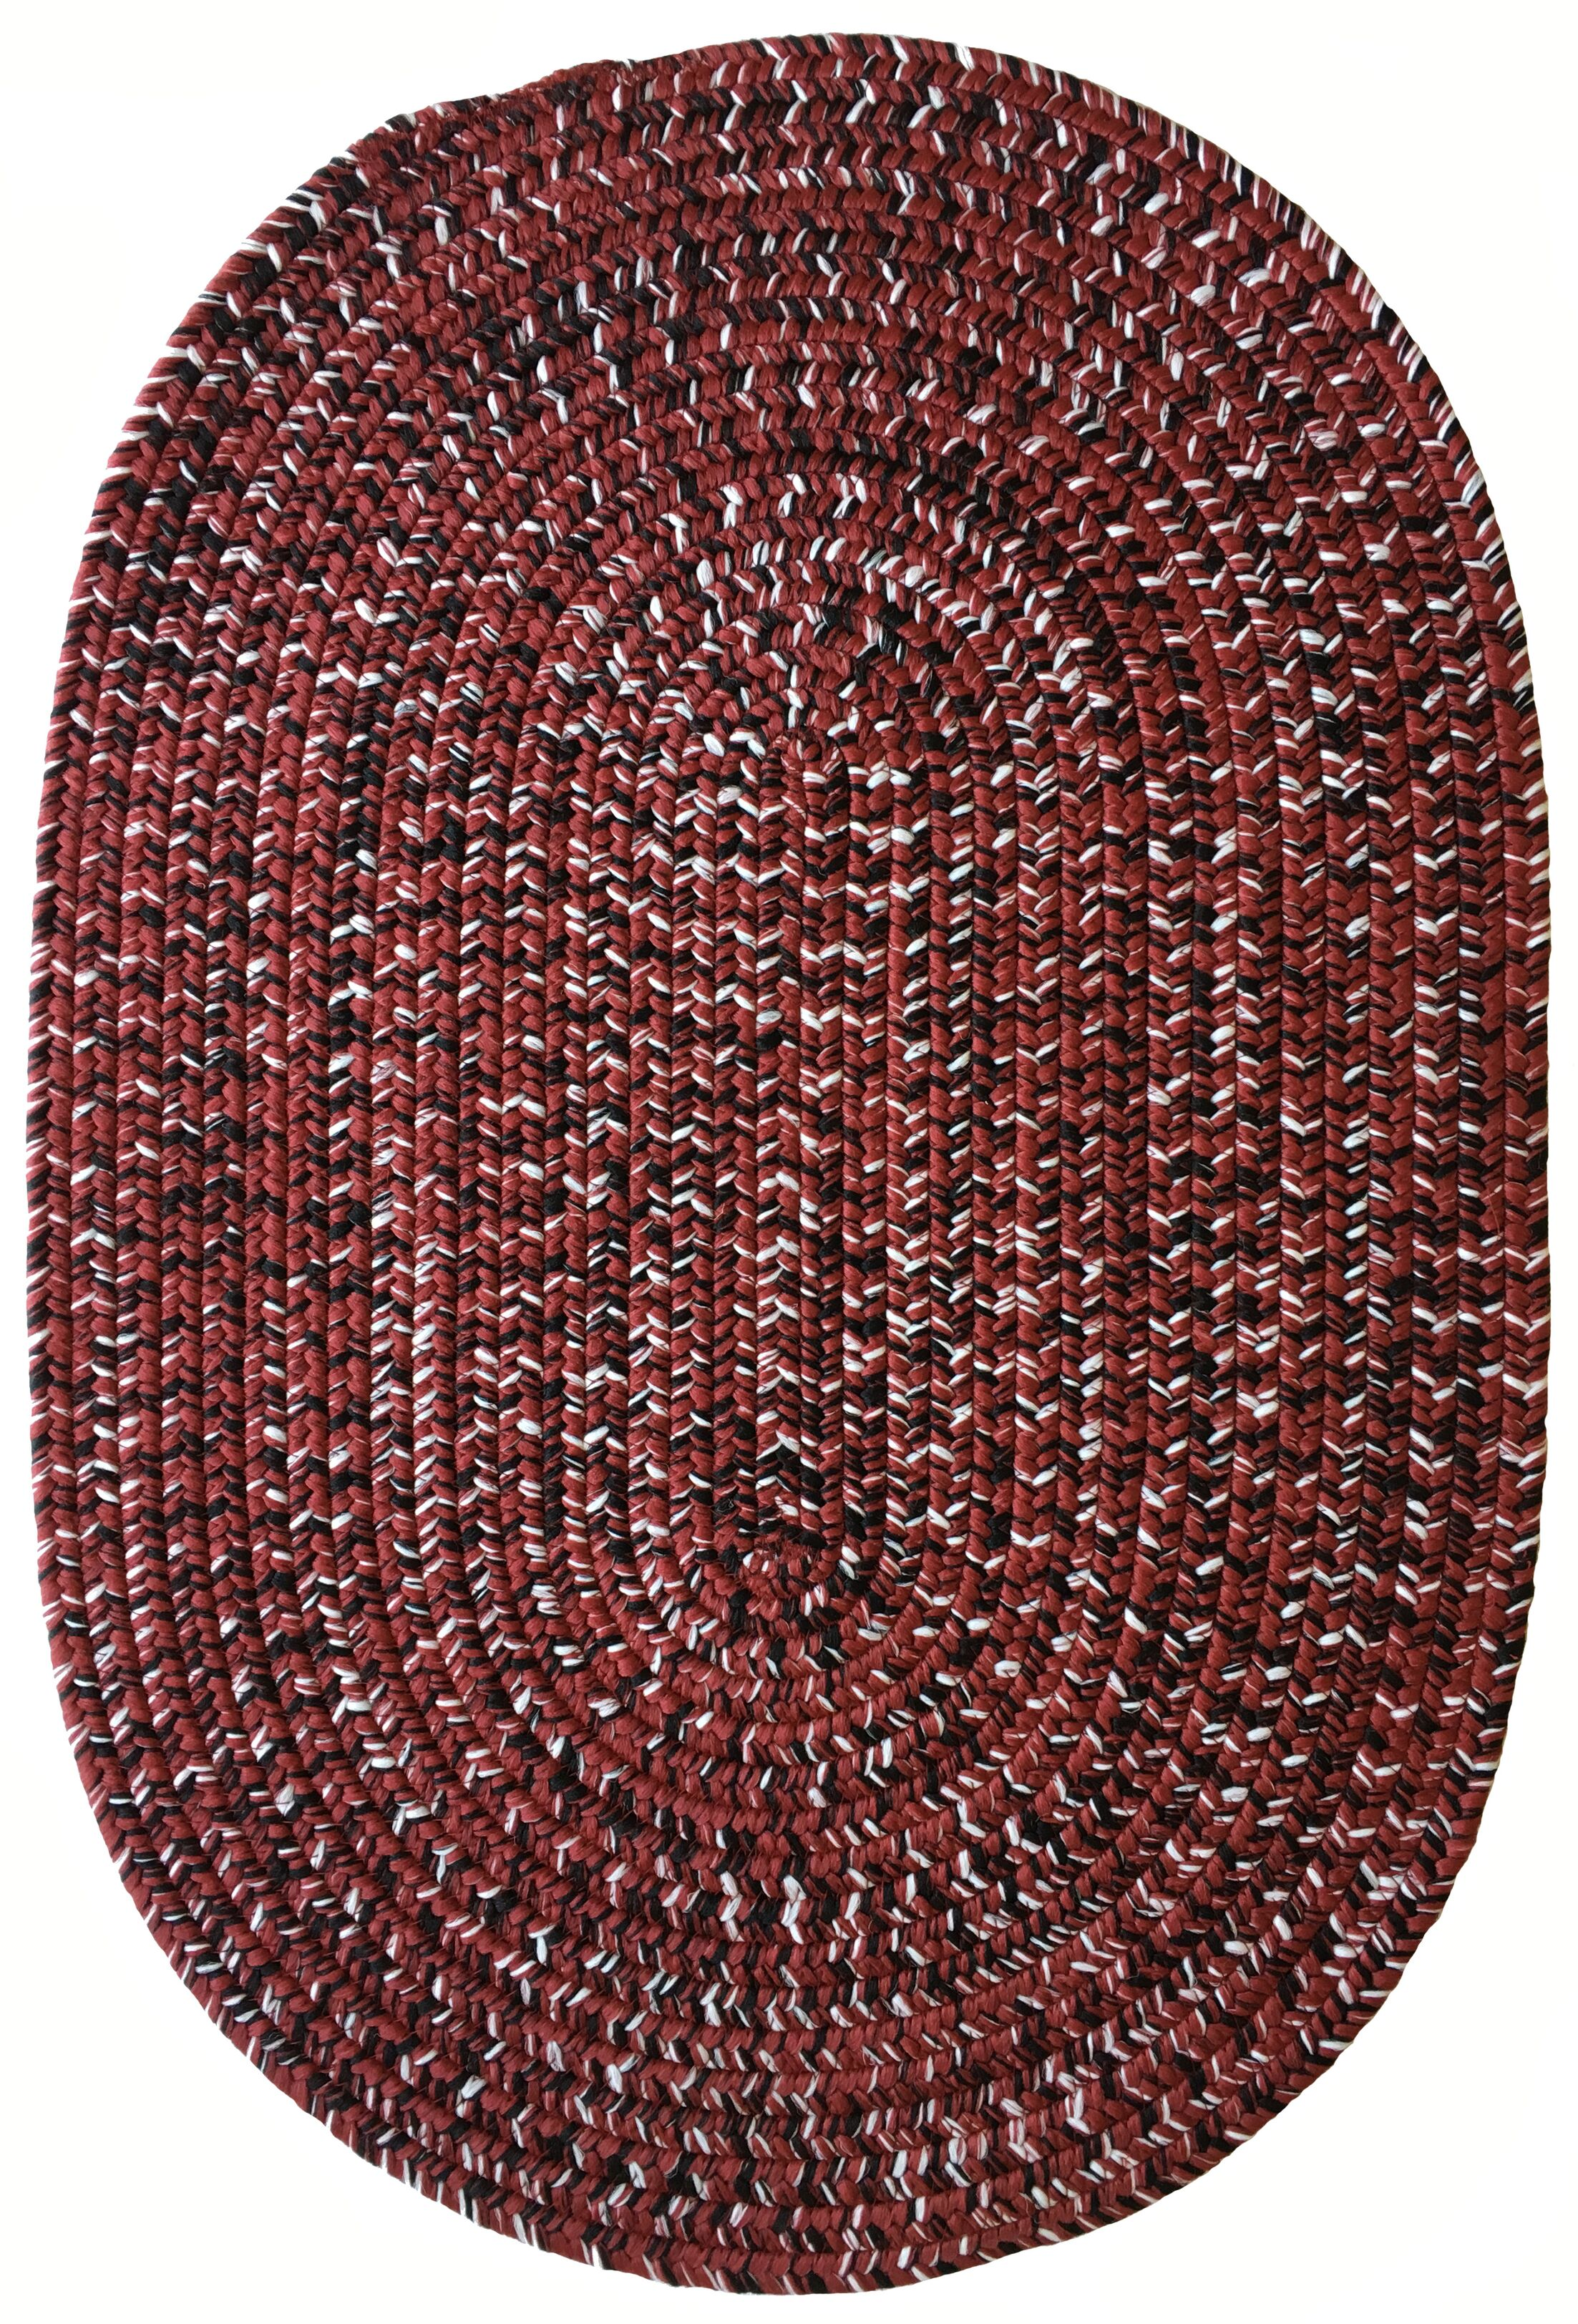 One-of-a-Kind Aukerman Hand-Braided Red Indoor/Outdoor Area Rug Rug Size: Oval 5' x 8'